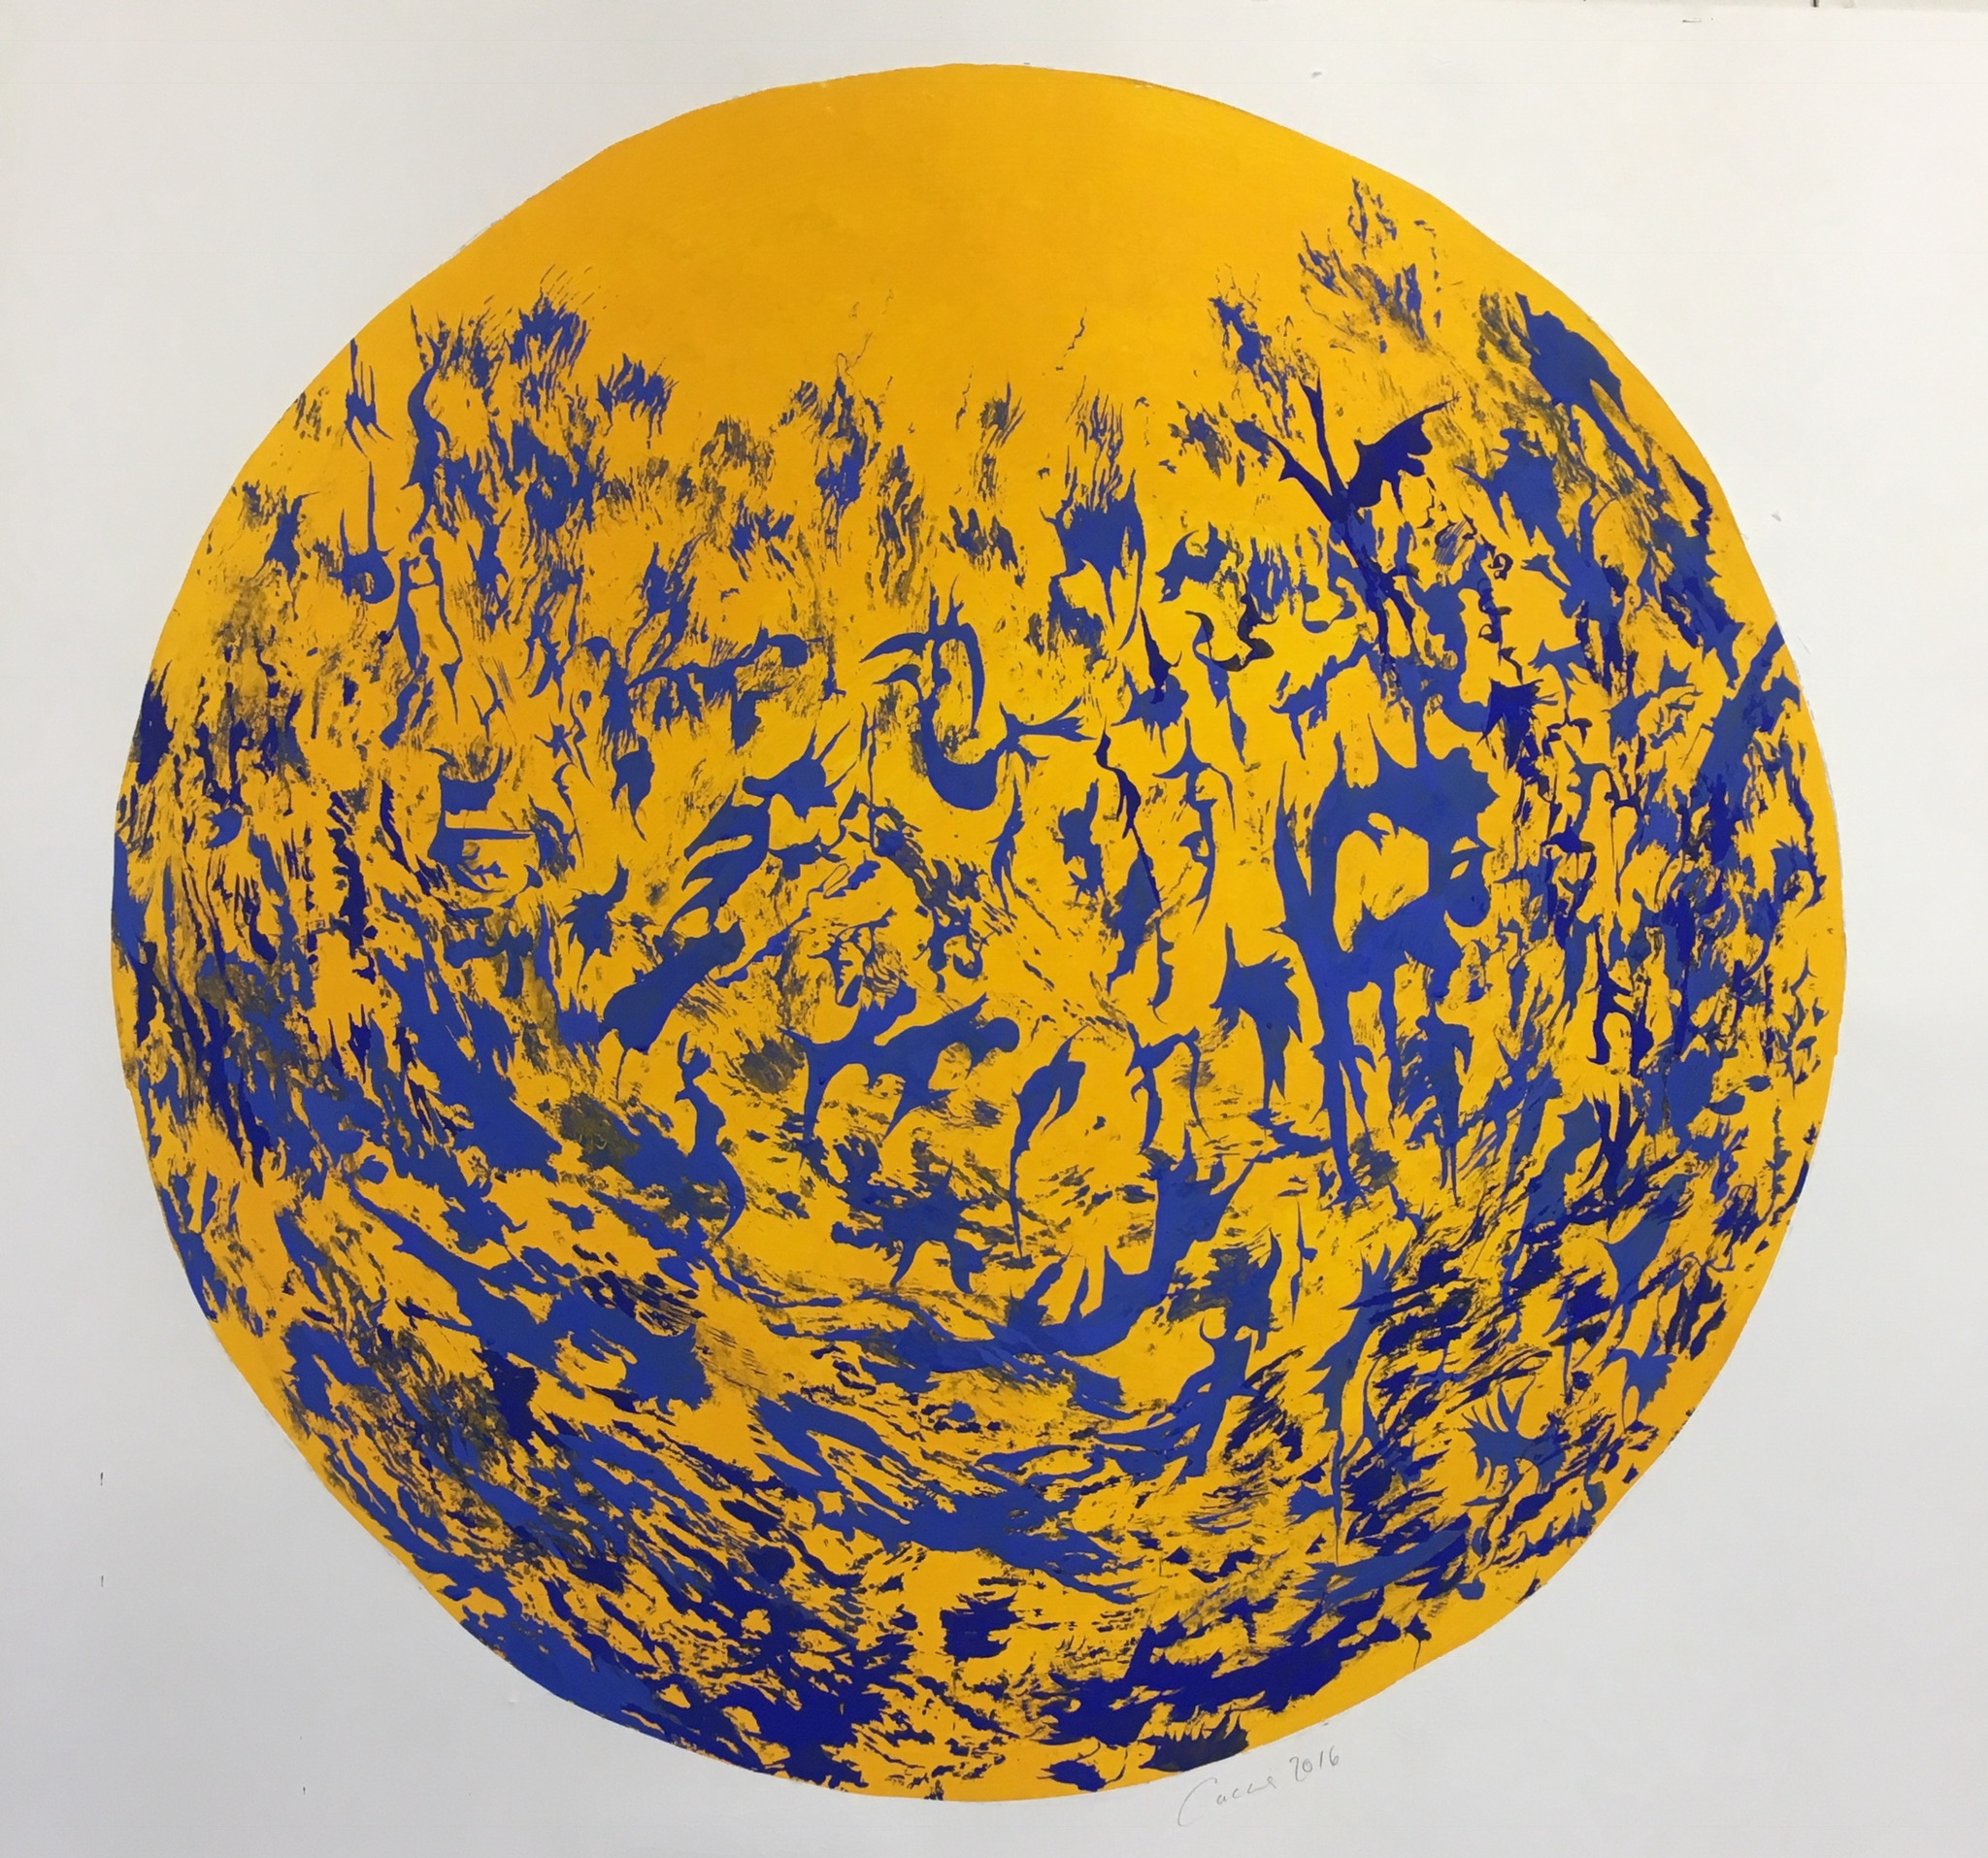 Tondo in Yellow and Blue, Milk paint on paper, 100  diameter 2016